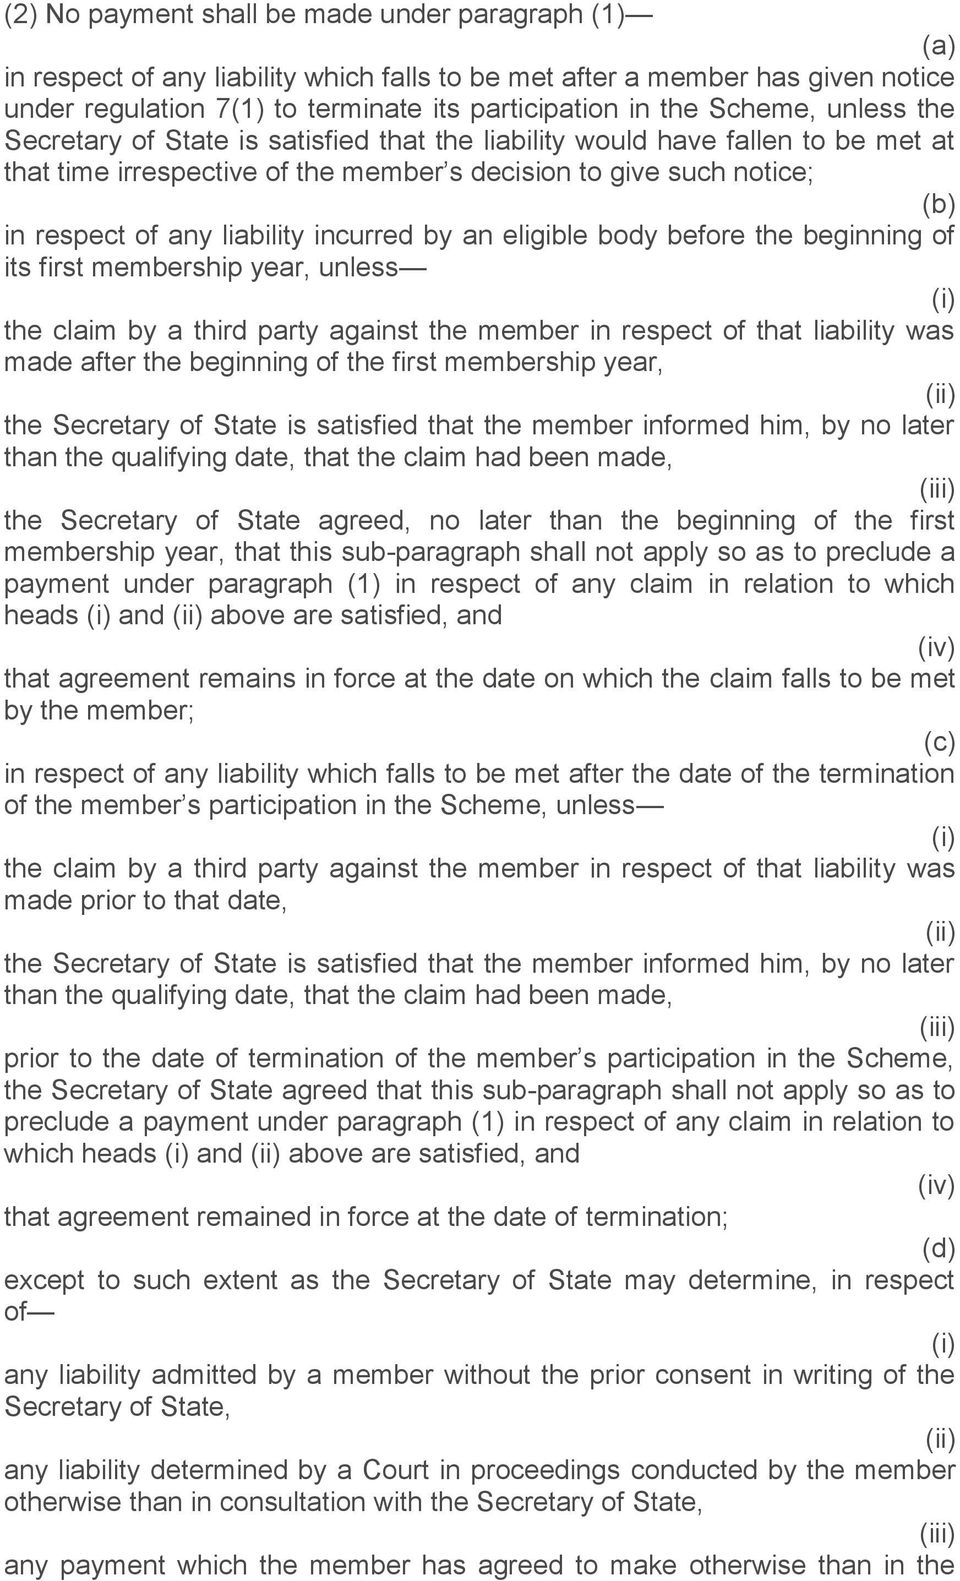 by an eligible body before the beginning of its first membership year, unless the claim by a third party against the member in respect of that liability was made after the beginning of the first